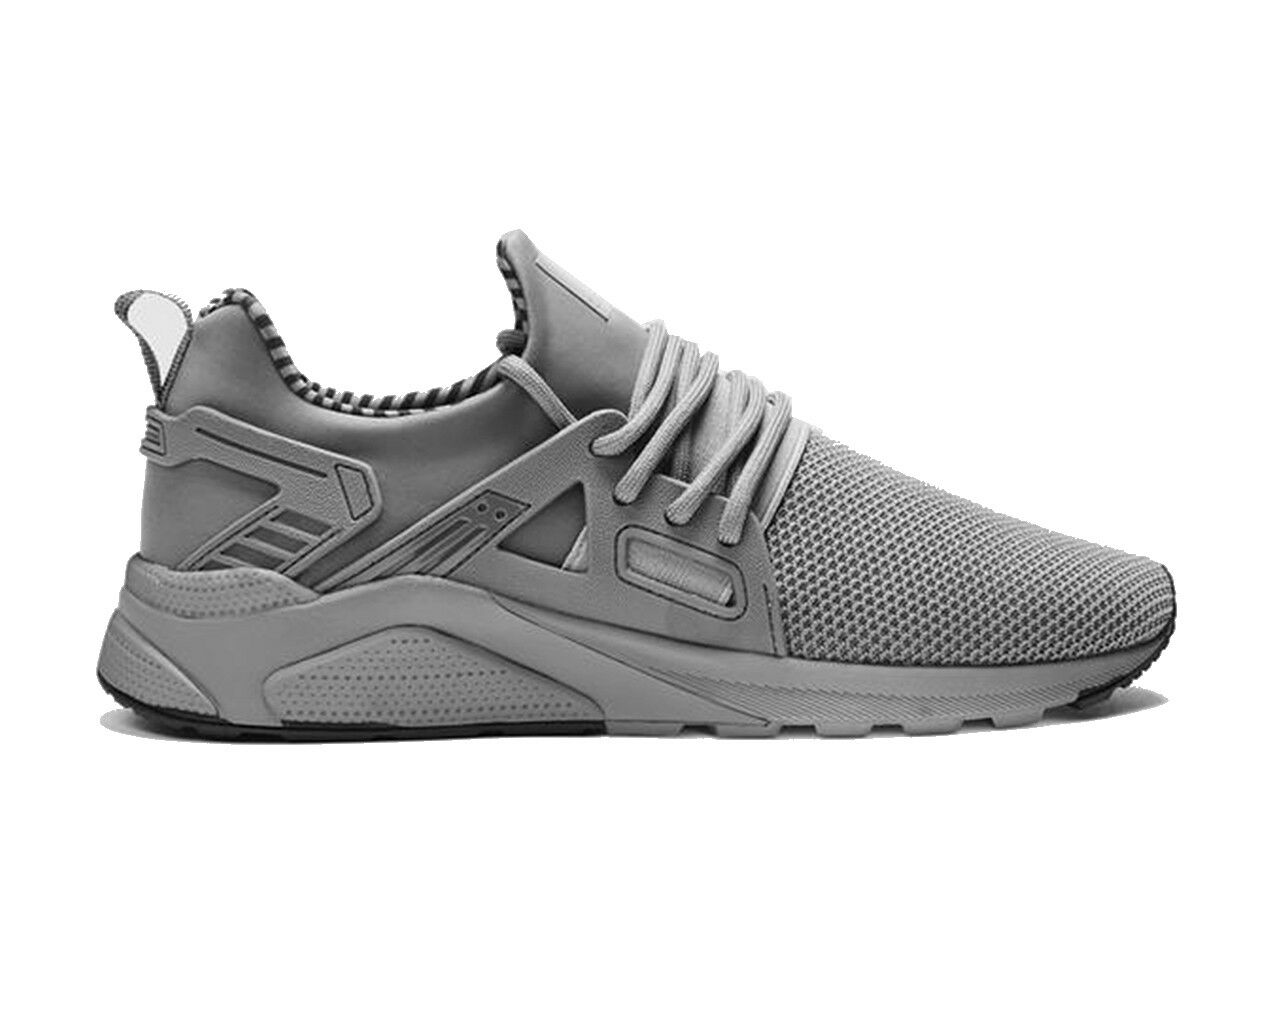 Certified London CT8000 Runner Grey Mono Mens Trainers Gym Shoes